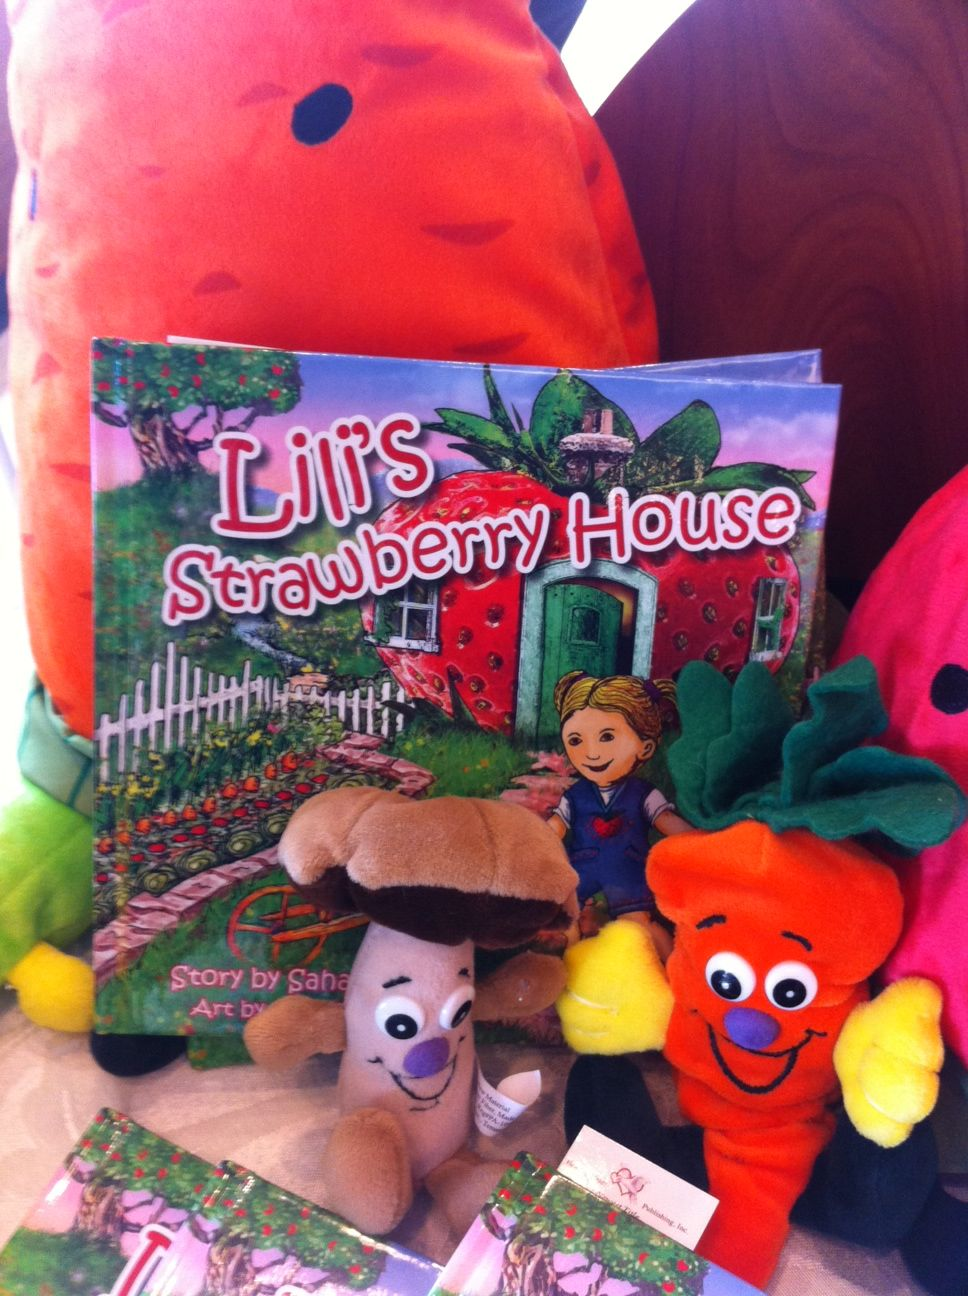 Colorful fruit and vegetable plush toys make reading Lili's Strawberry House book a great activity. www.lilistrawbhs.com